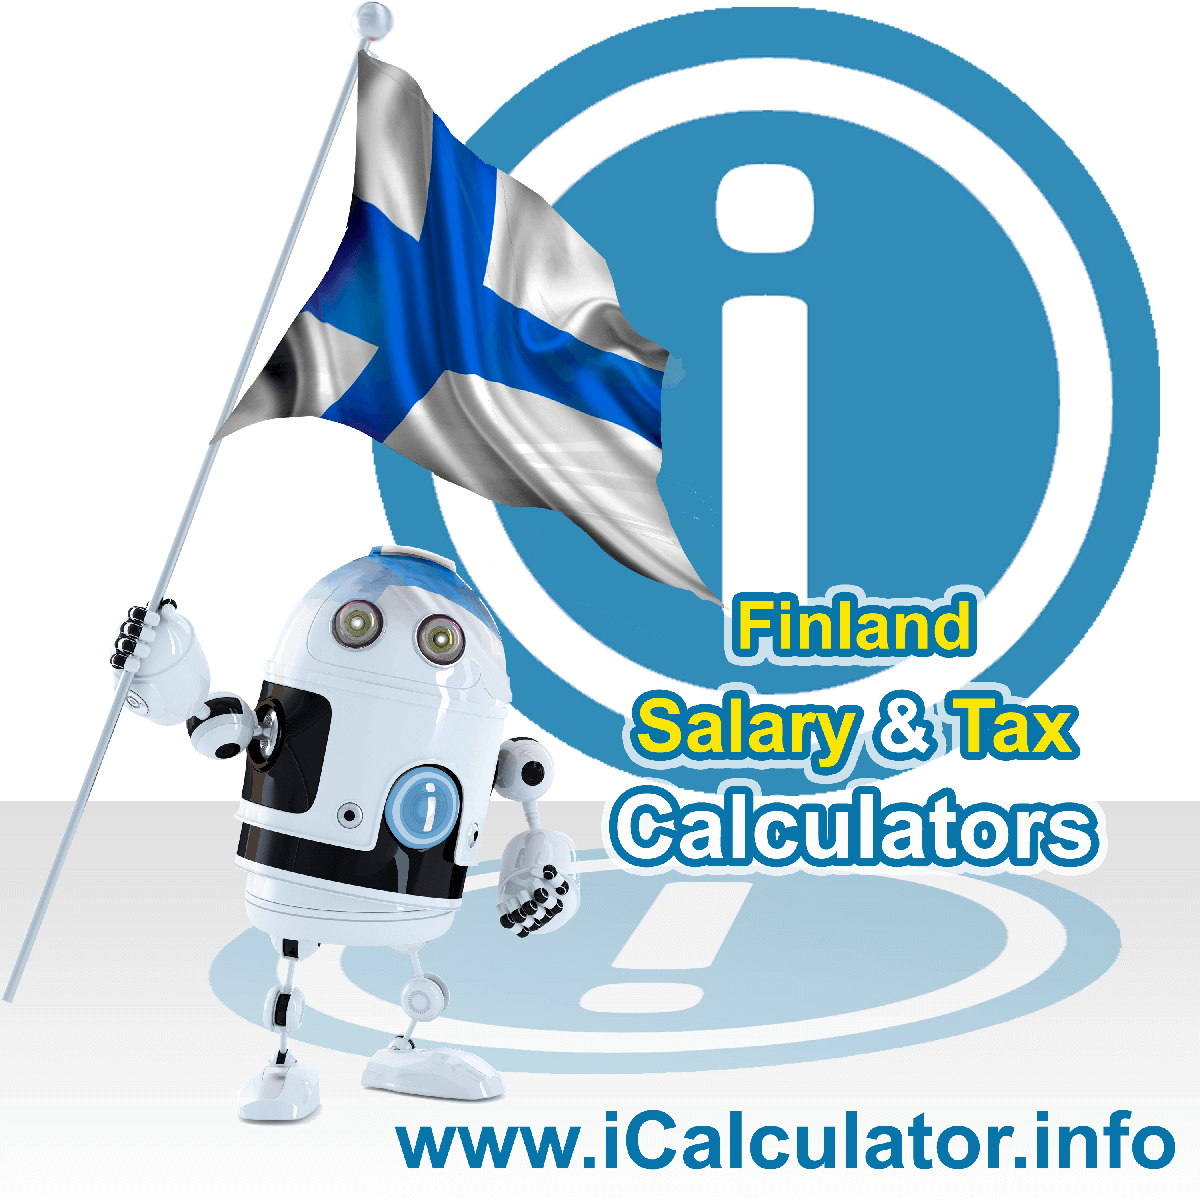 Finland Tax Calculator. This image shows the Finland flag and information relating to the tax formula for the Finland Salary Calculator